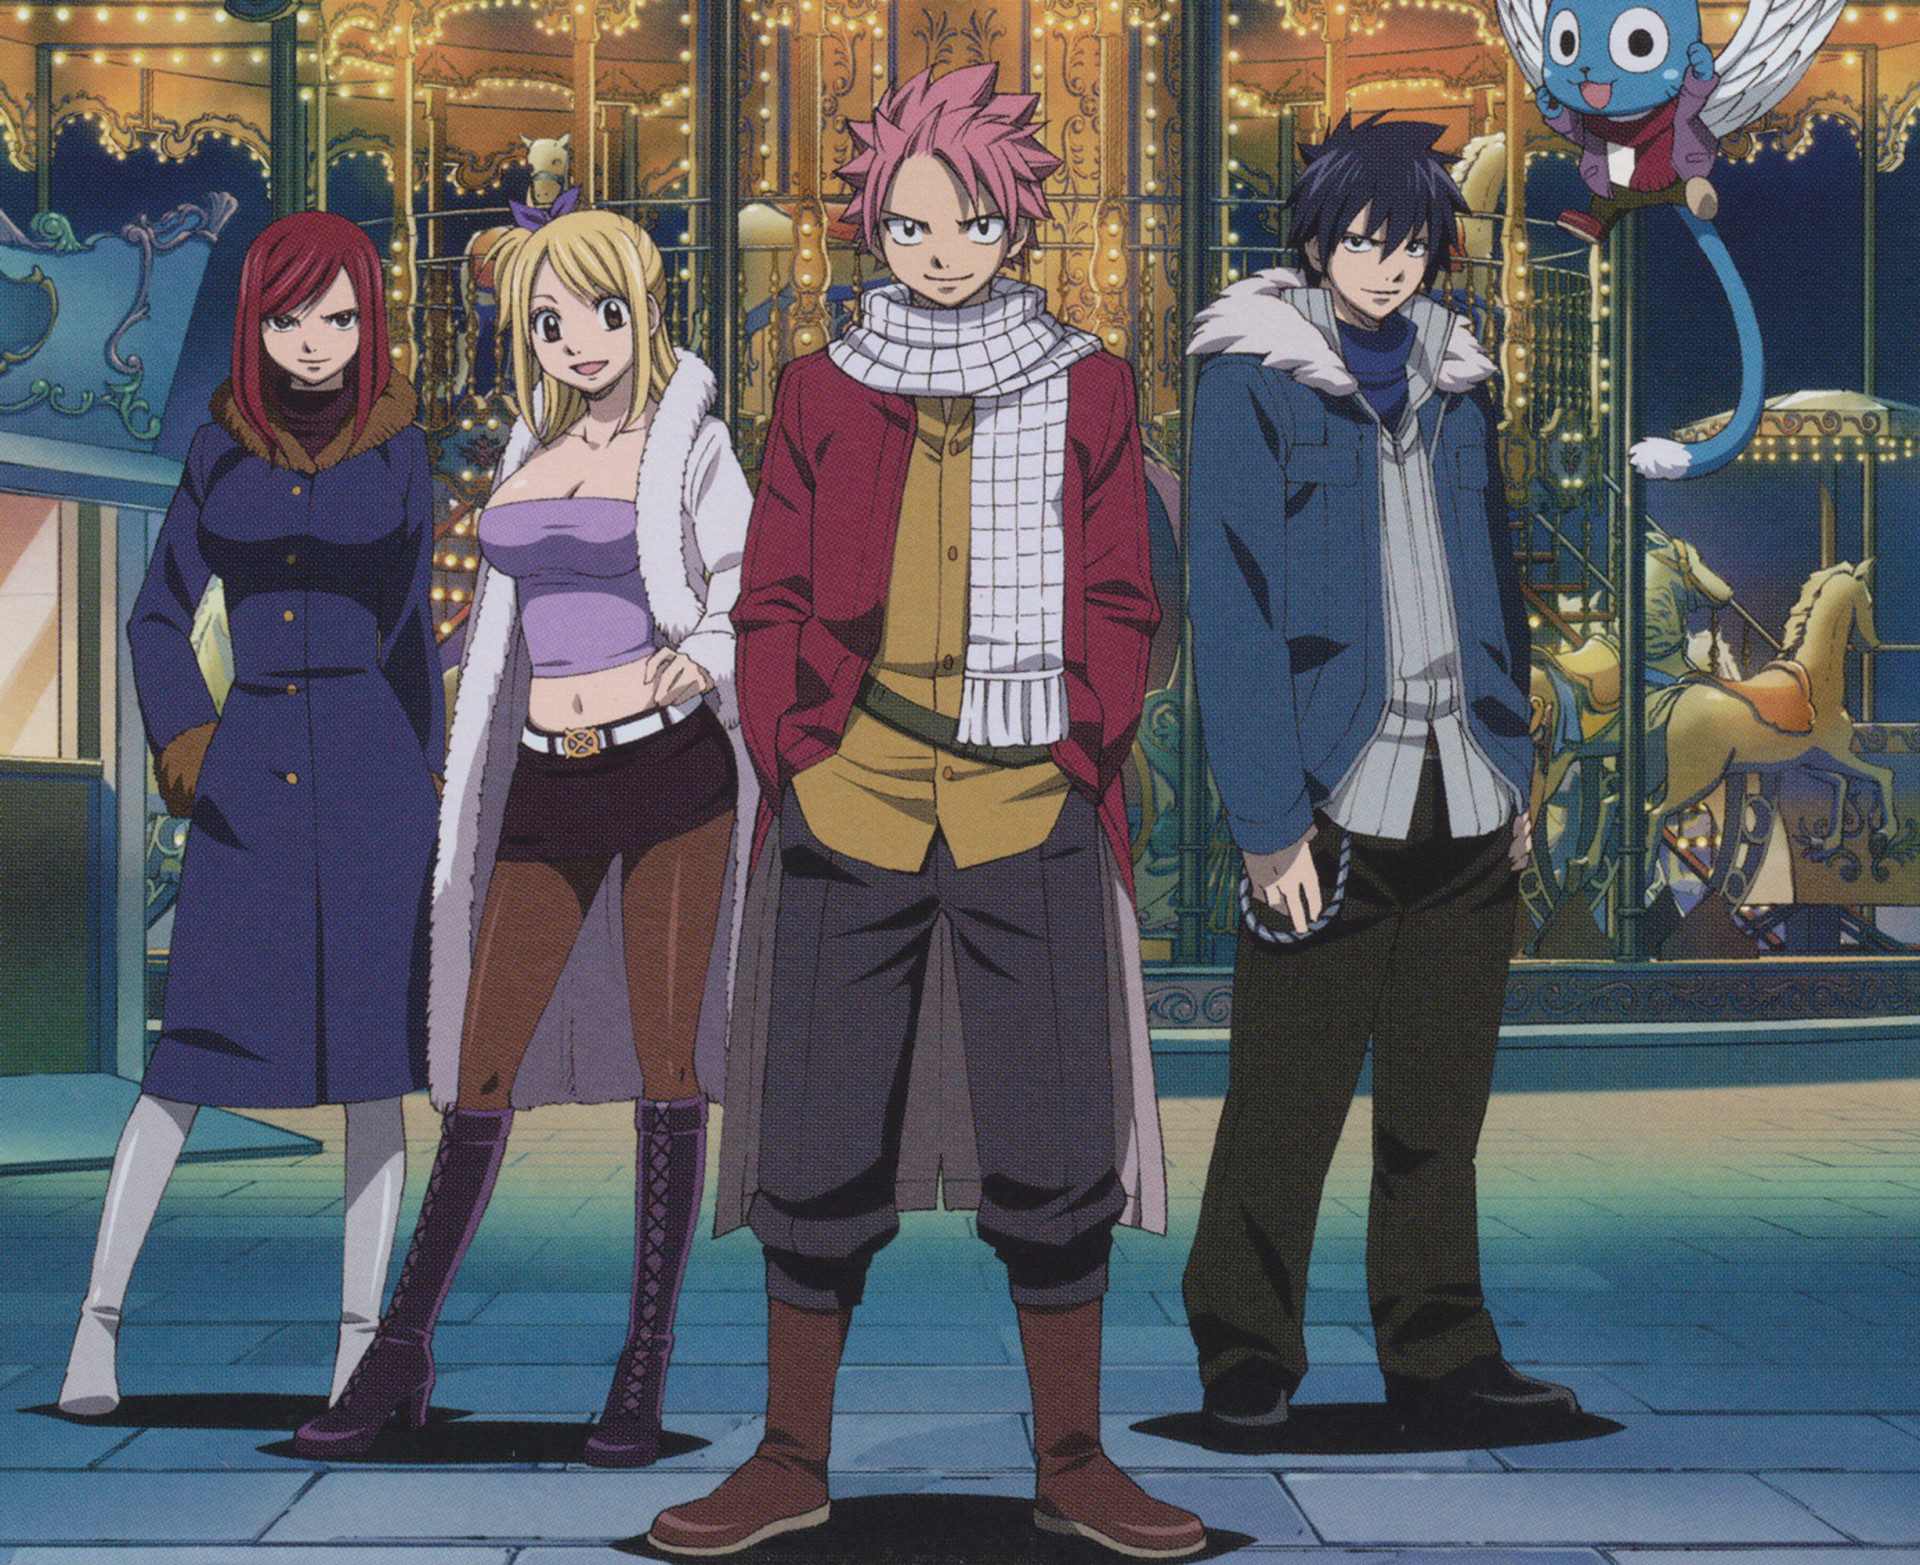 1920x1565 Anime Fairy Tail Lucy Heartfilia Natsu Dragneel Erza Scarlet Gray Fullbuster  Happy (Fairy Tail) Wallpaper